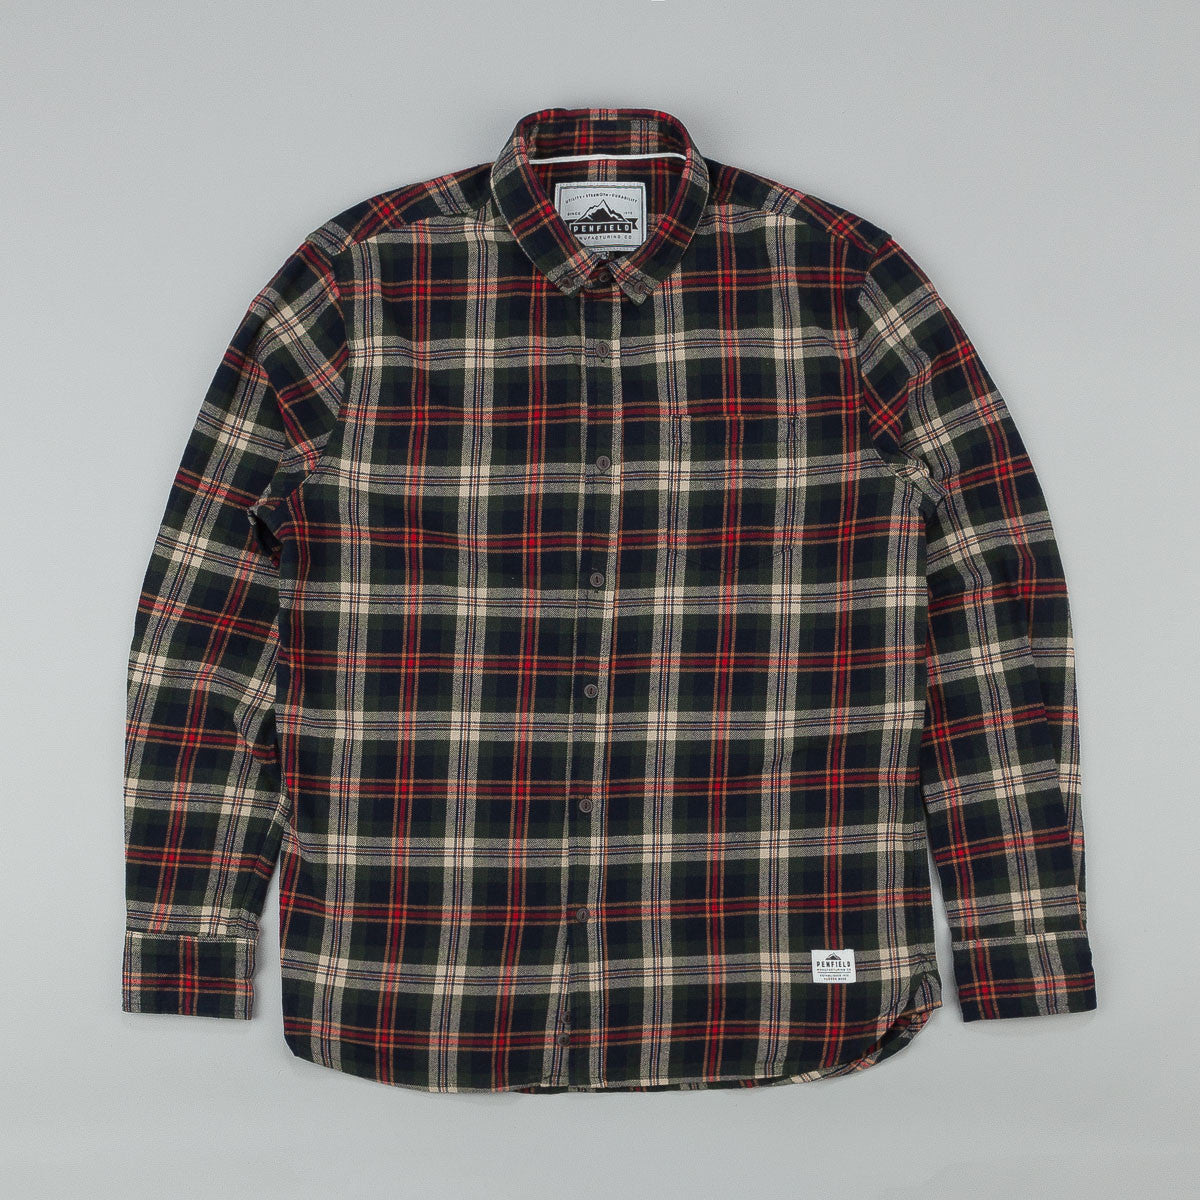 Penfield Harmon Plaid Long Sleeve Shirt